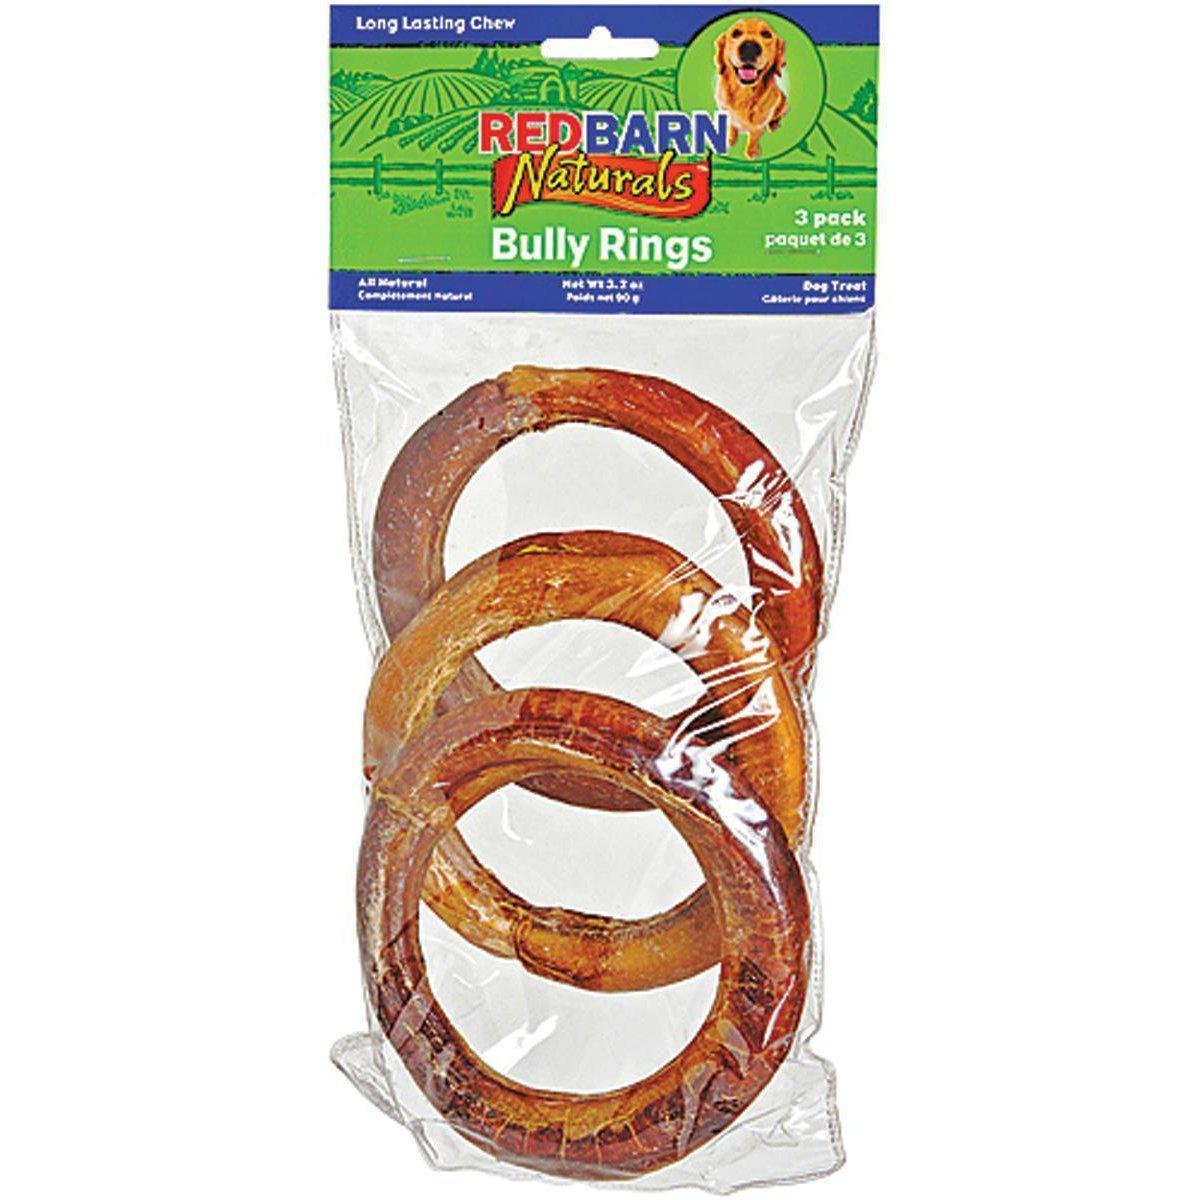 Bully Rings Long Lasting With Natural Beef Muscles Lightly Smoked Dog Treats-Redbarn-DirtyFurClothing